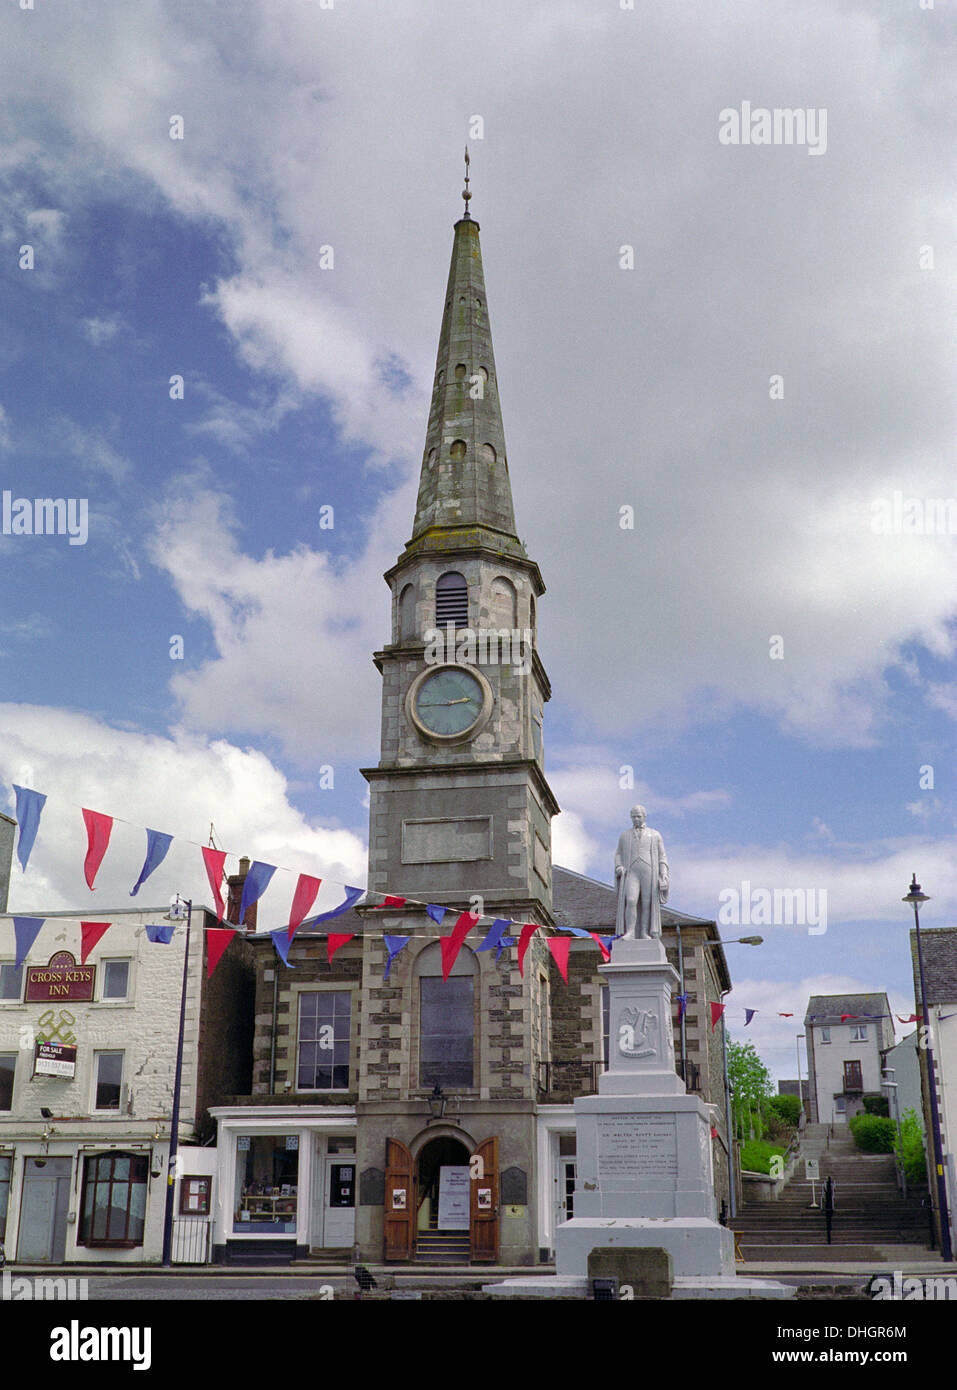 Selkirk Market Square with Sir Walter Scott Statue and The Old Court House, Borders, Scotland, UK - Stock Image